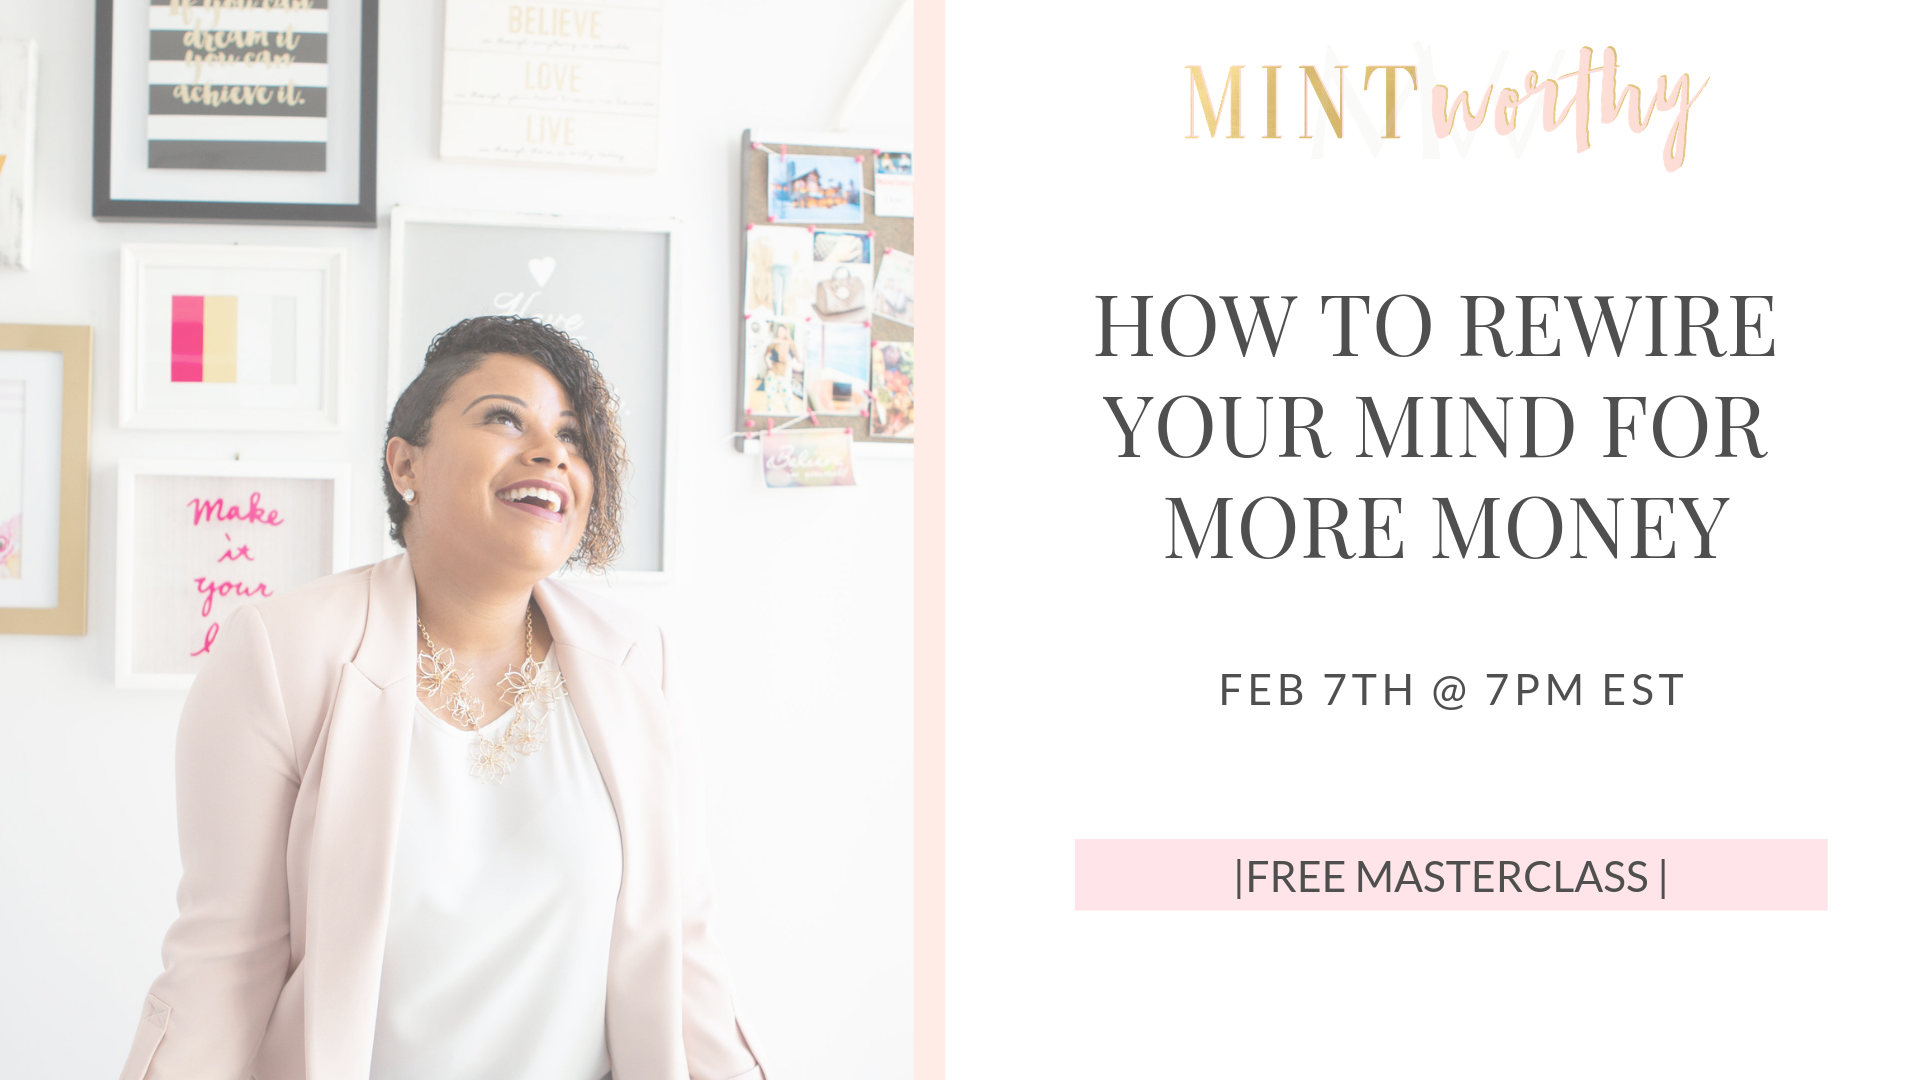 how to rewire your mind for more money-3.png